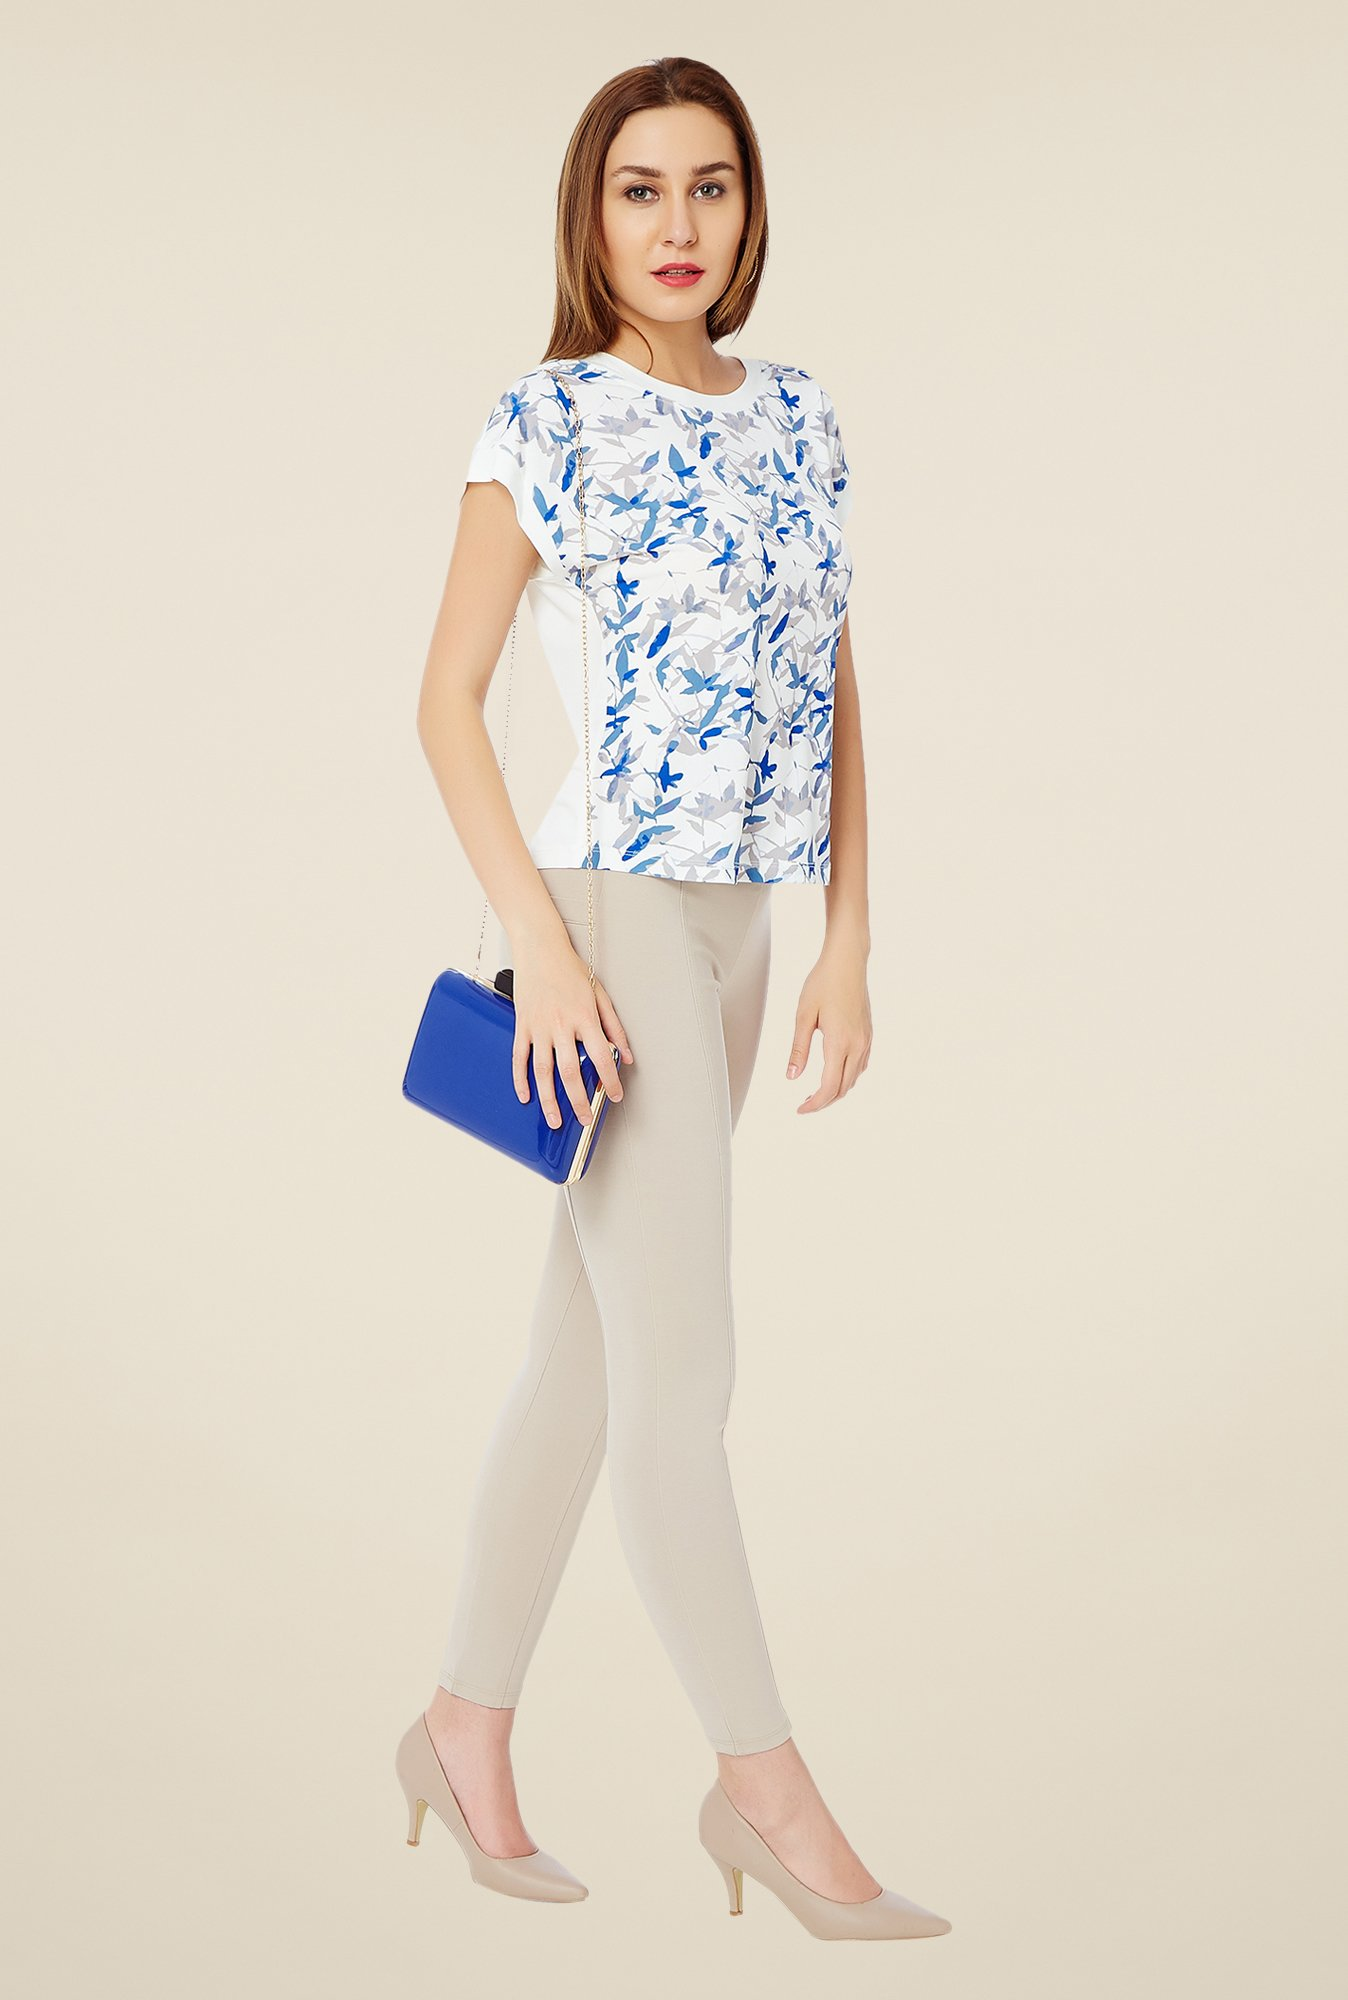 Avirate Off White & Blue Printed Top